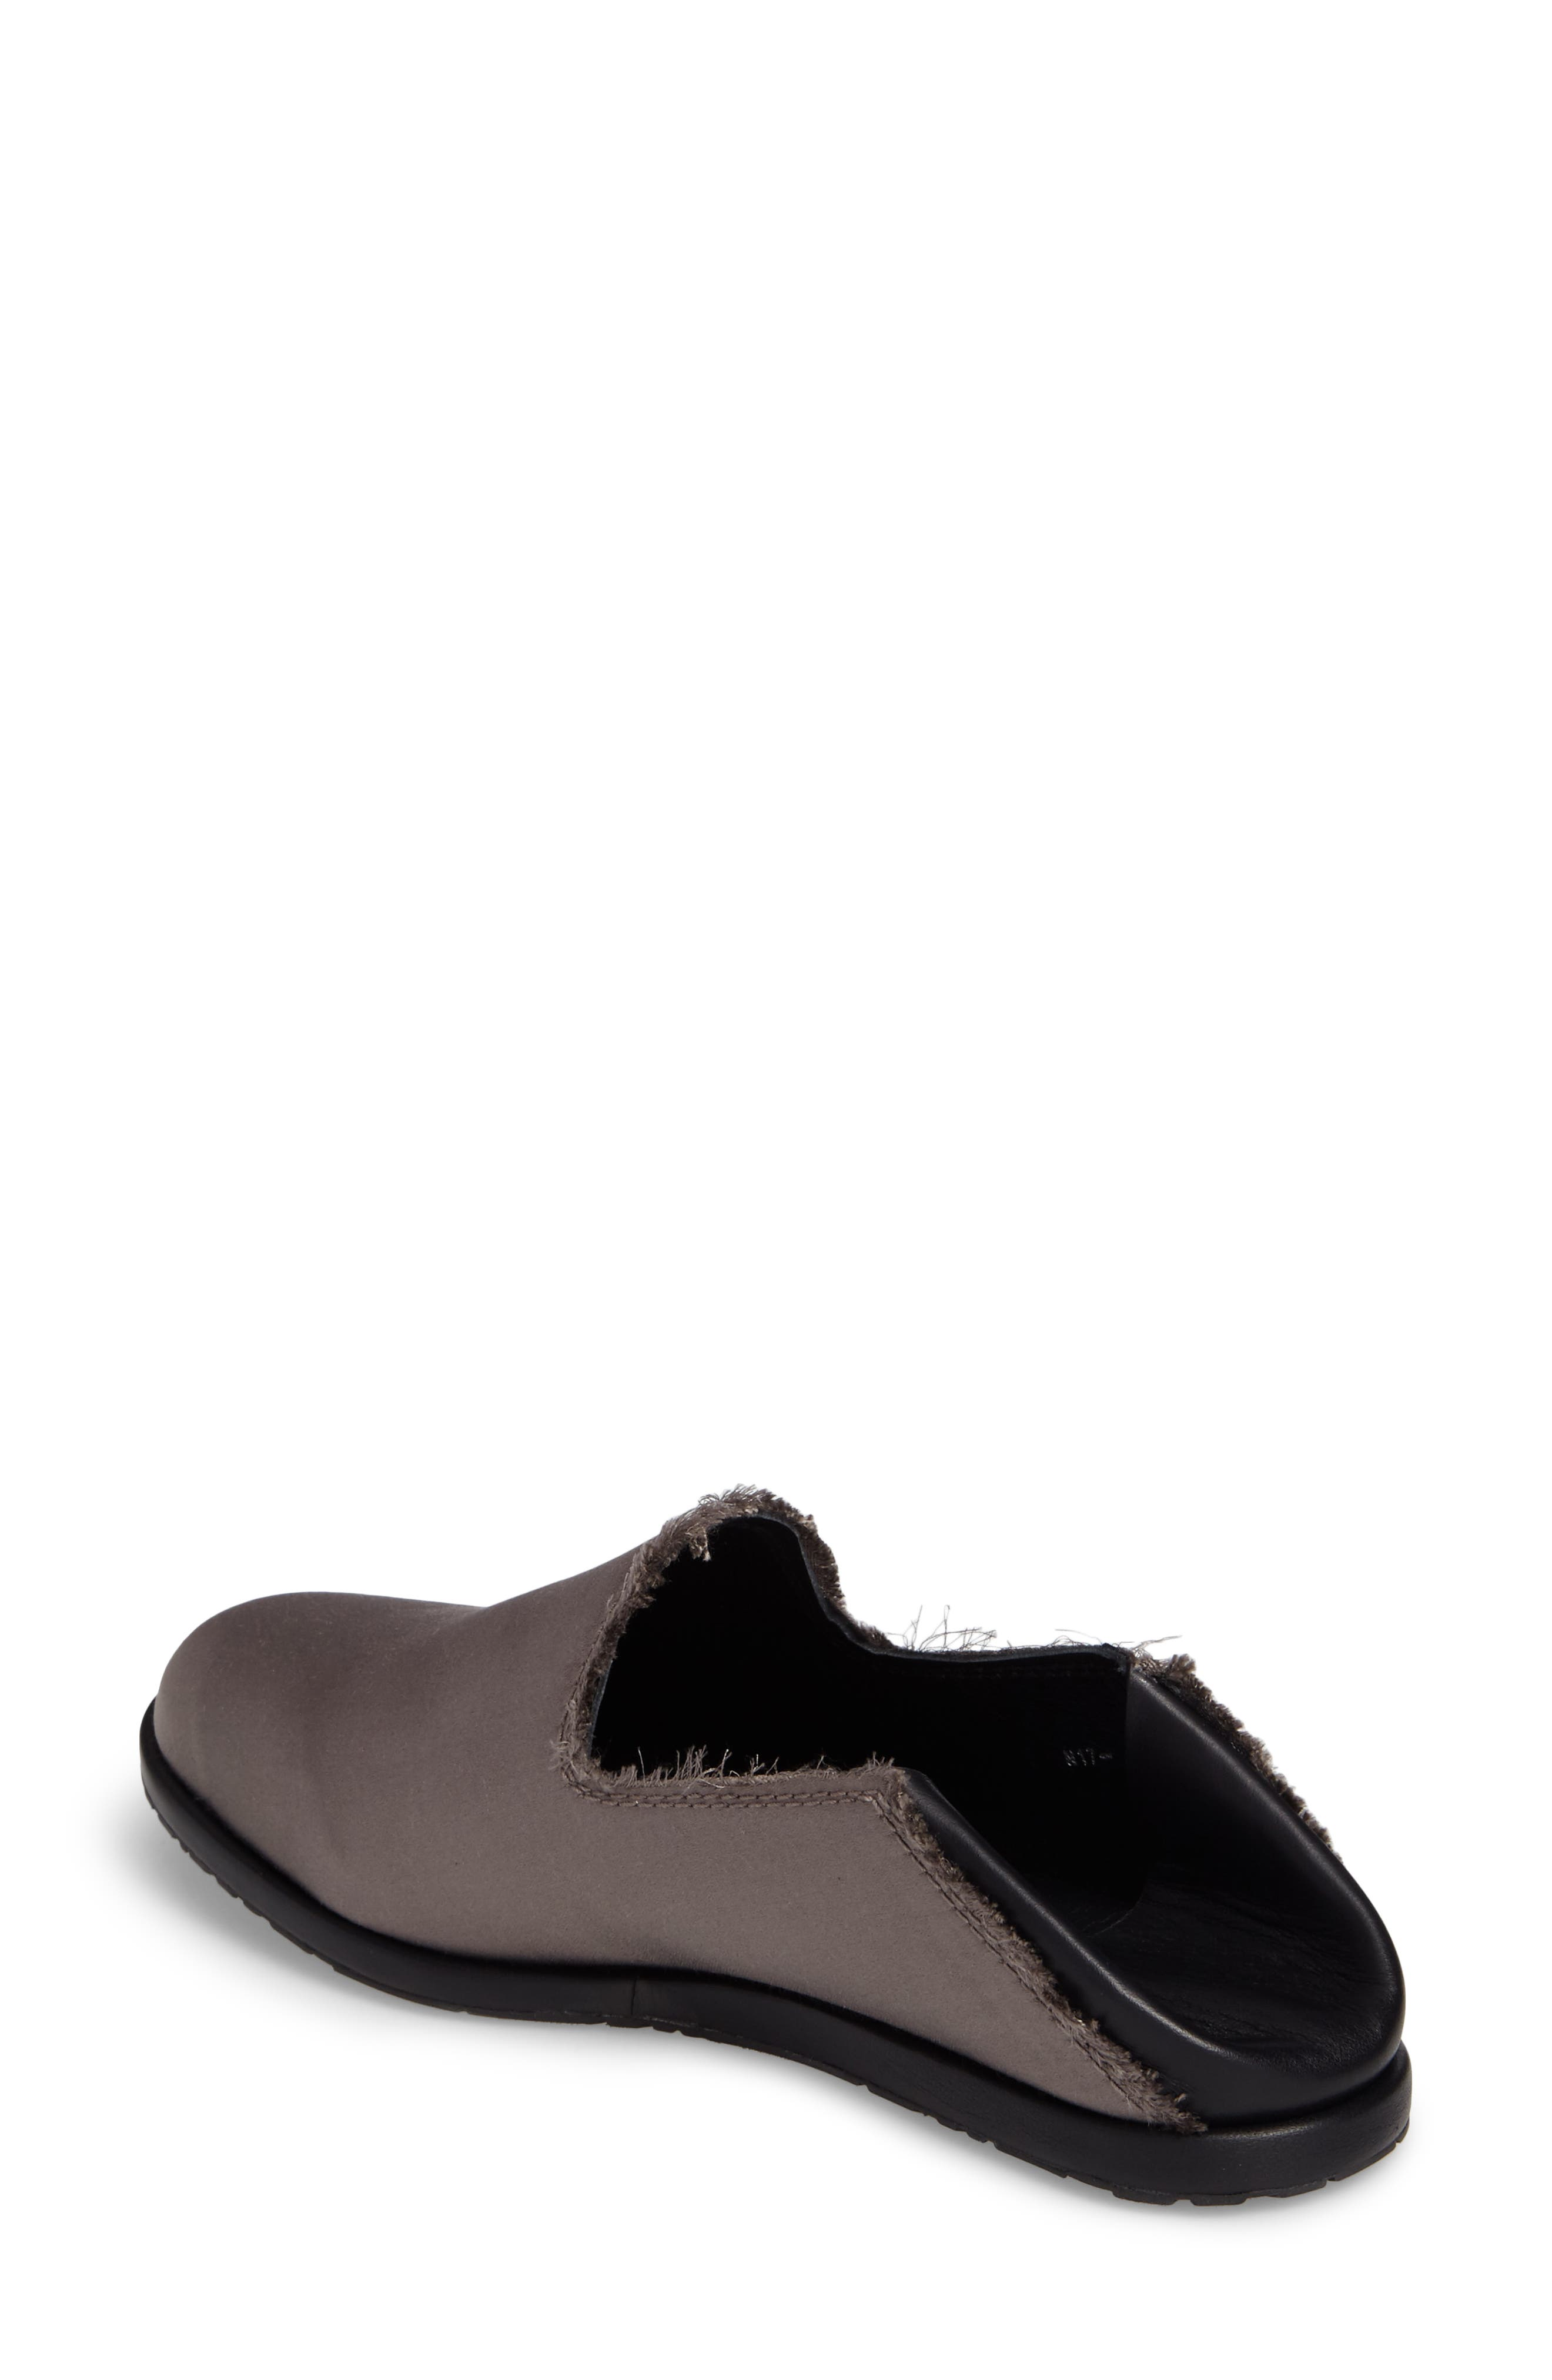 Yamir Convertible Loafer,                             Alternate thumbnail 3, color,                             Truffle Satin